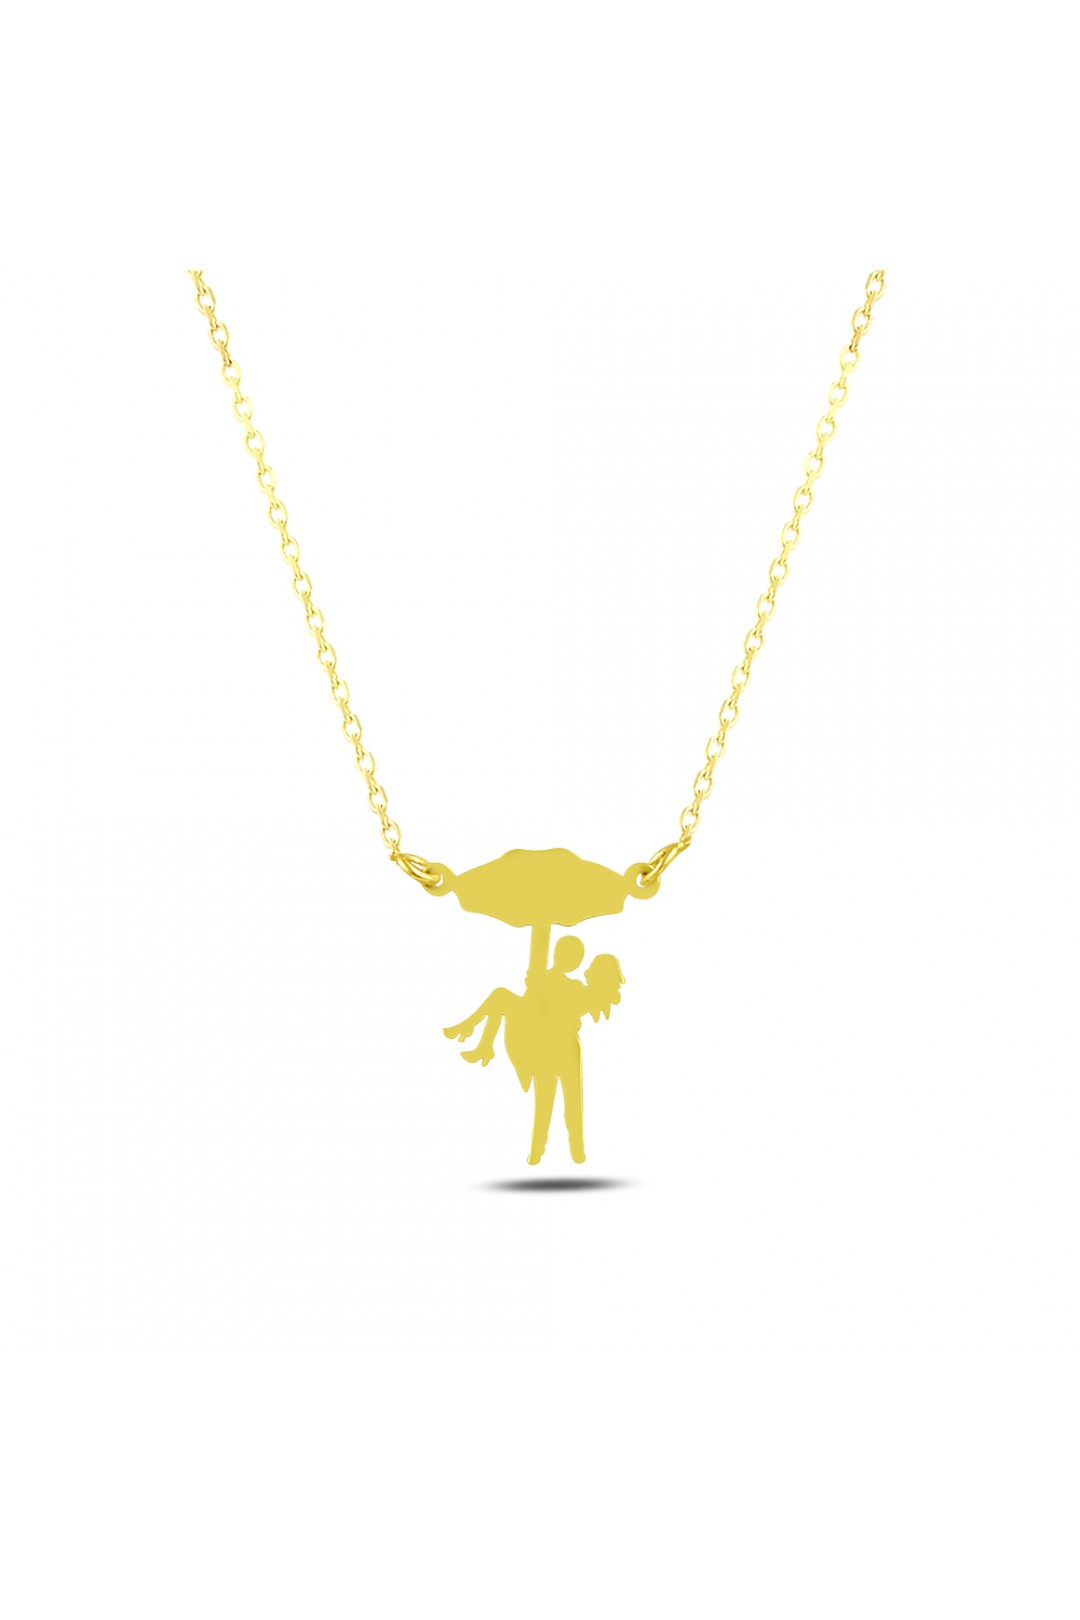 UMBRELLA AND COUPLE NECKLACE